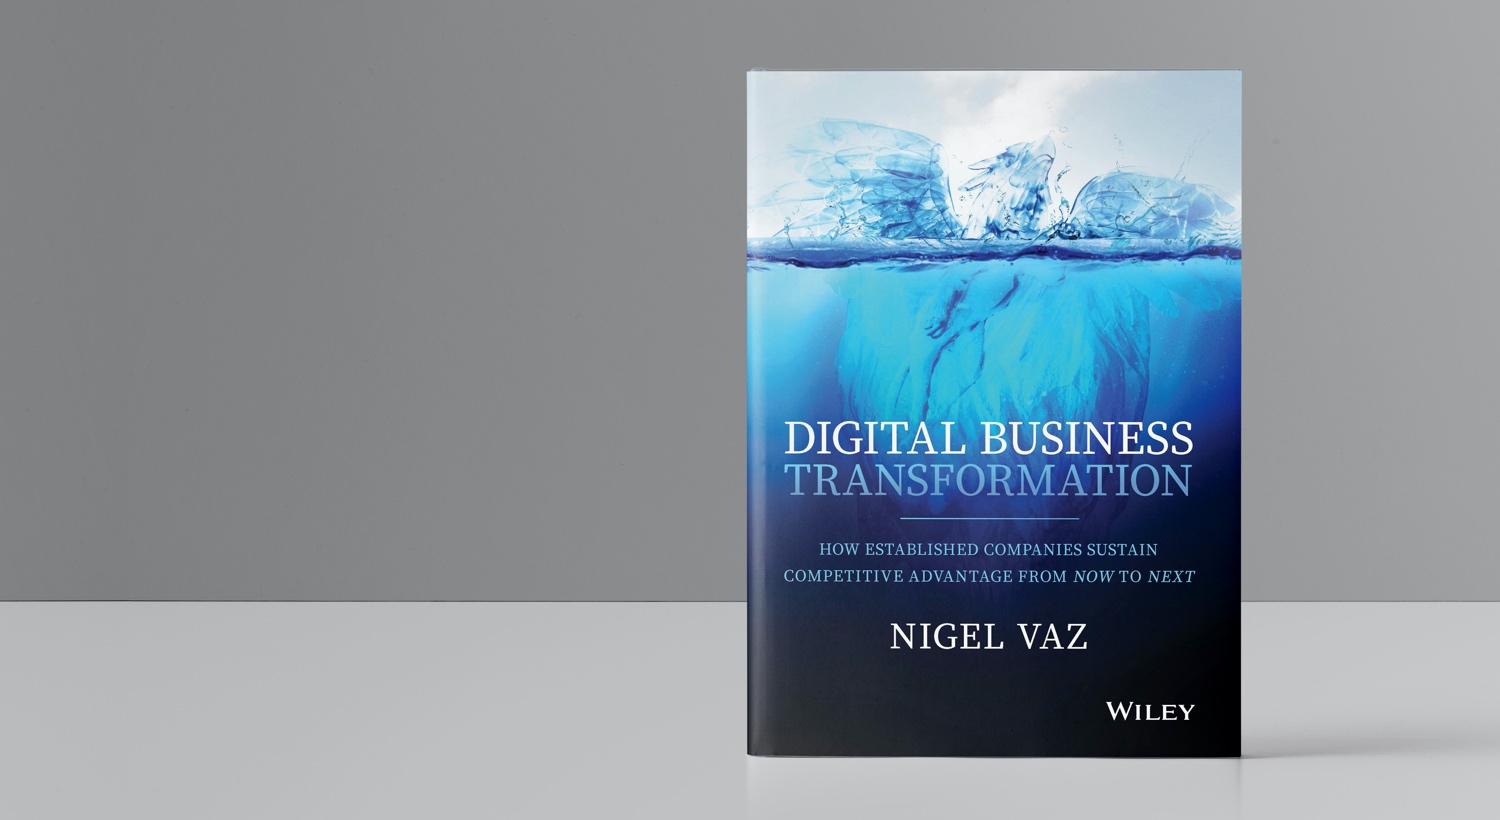 Digital Transformation Needs More Than Just Technology